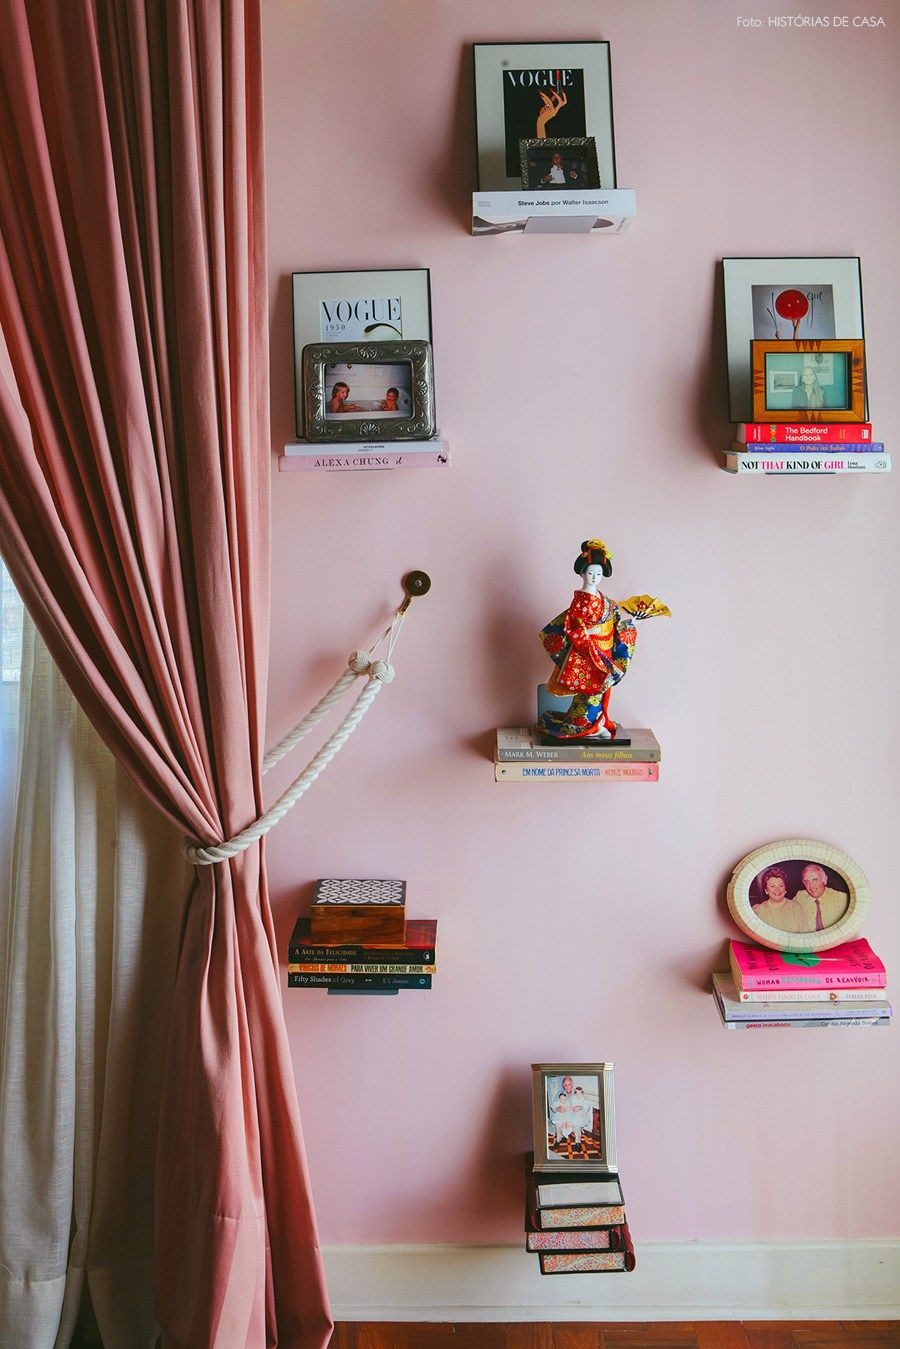 floating shelves + curtains that match the wall